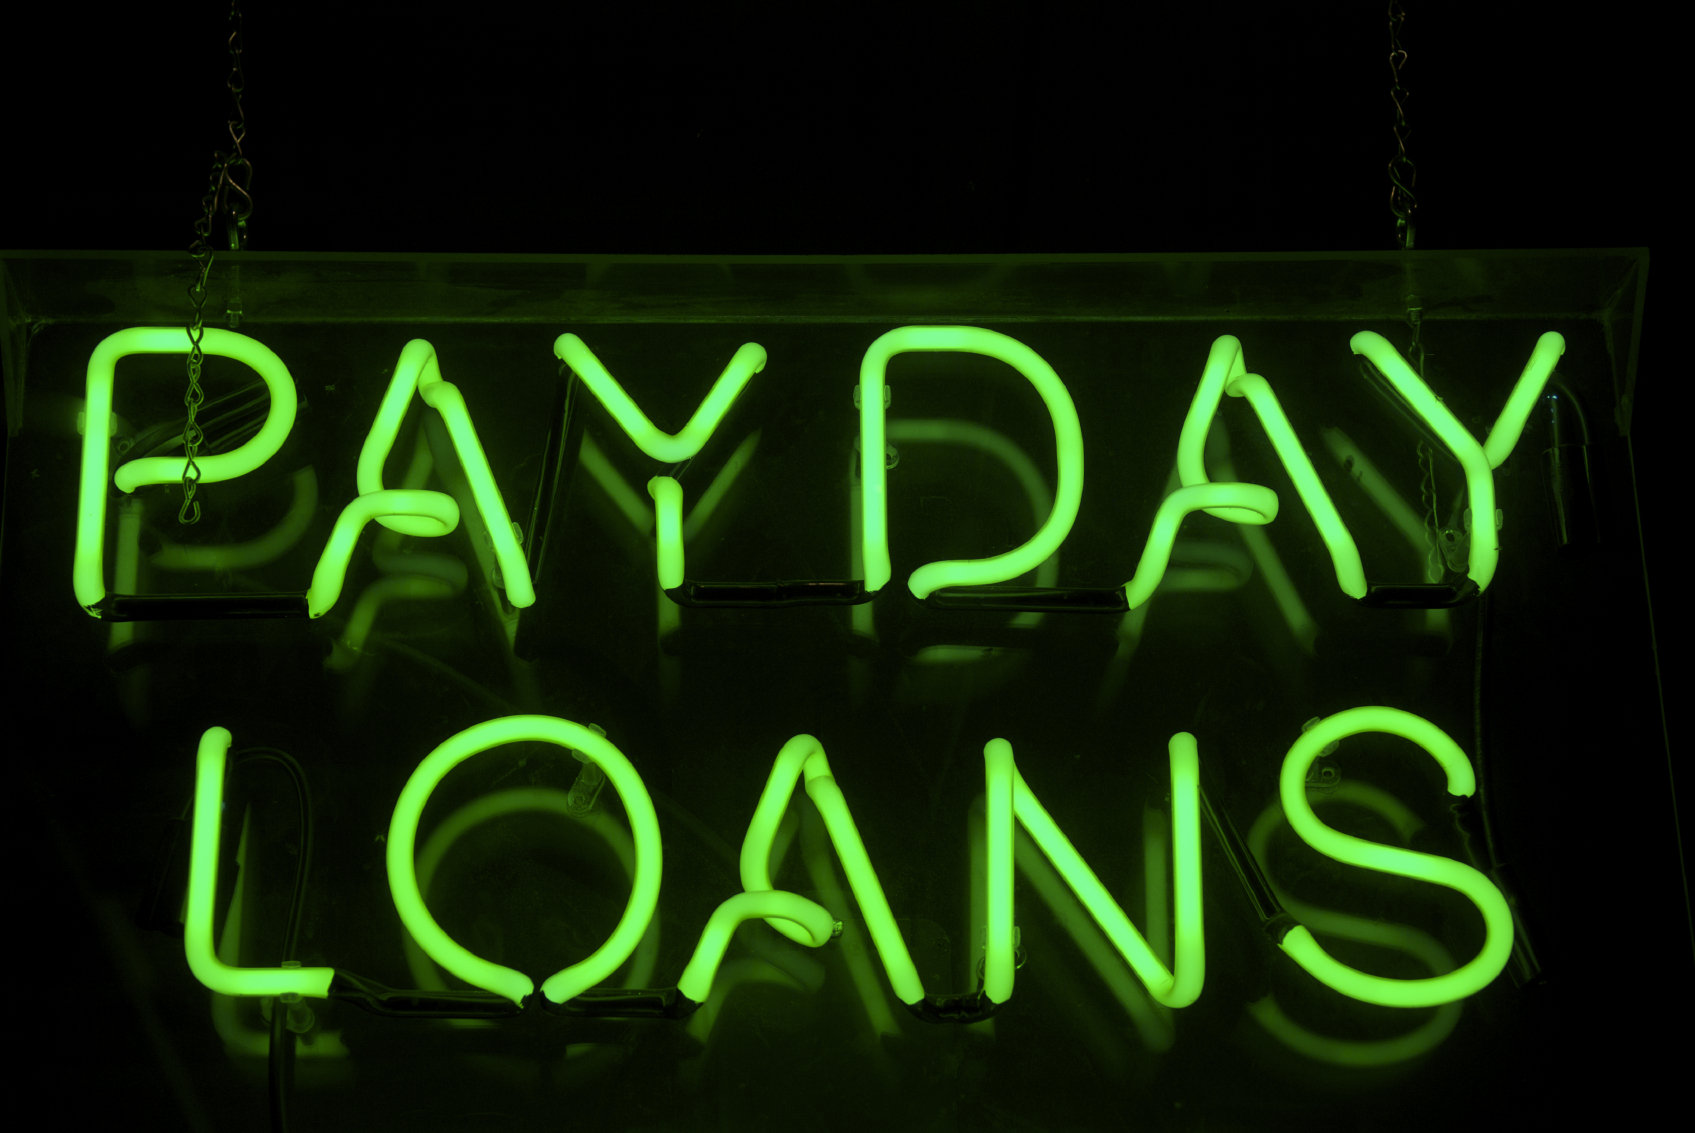 Letter: Most repay their payday loans without defaulting